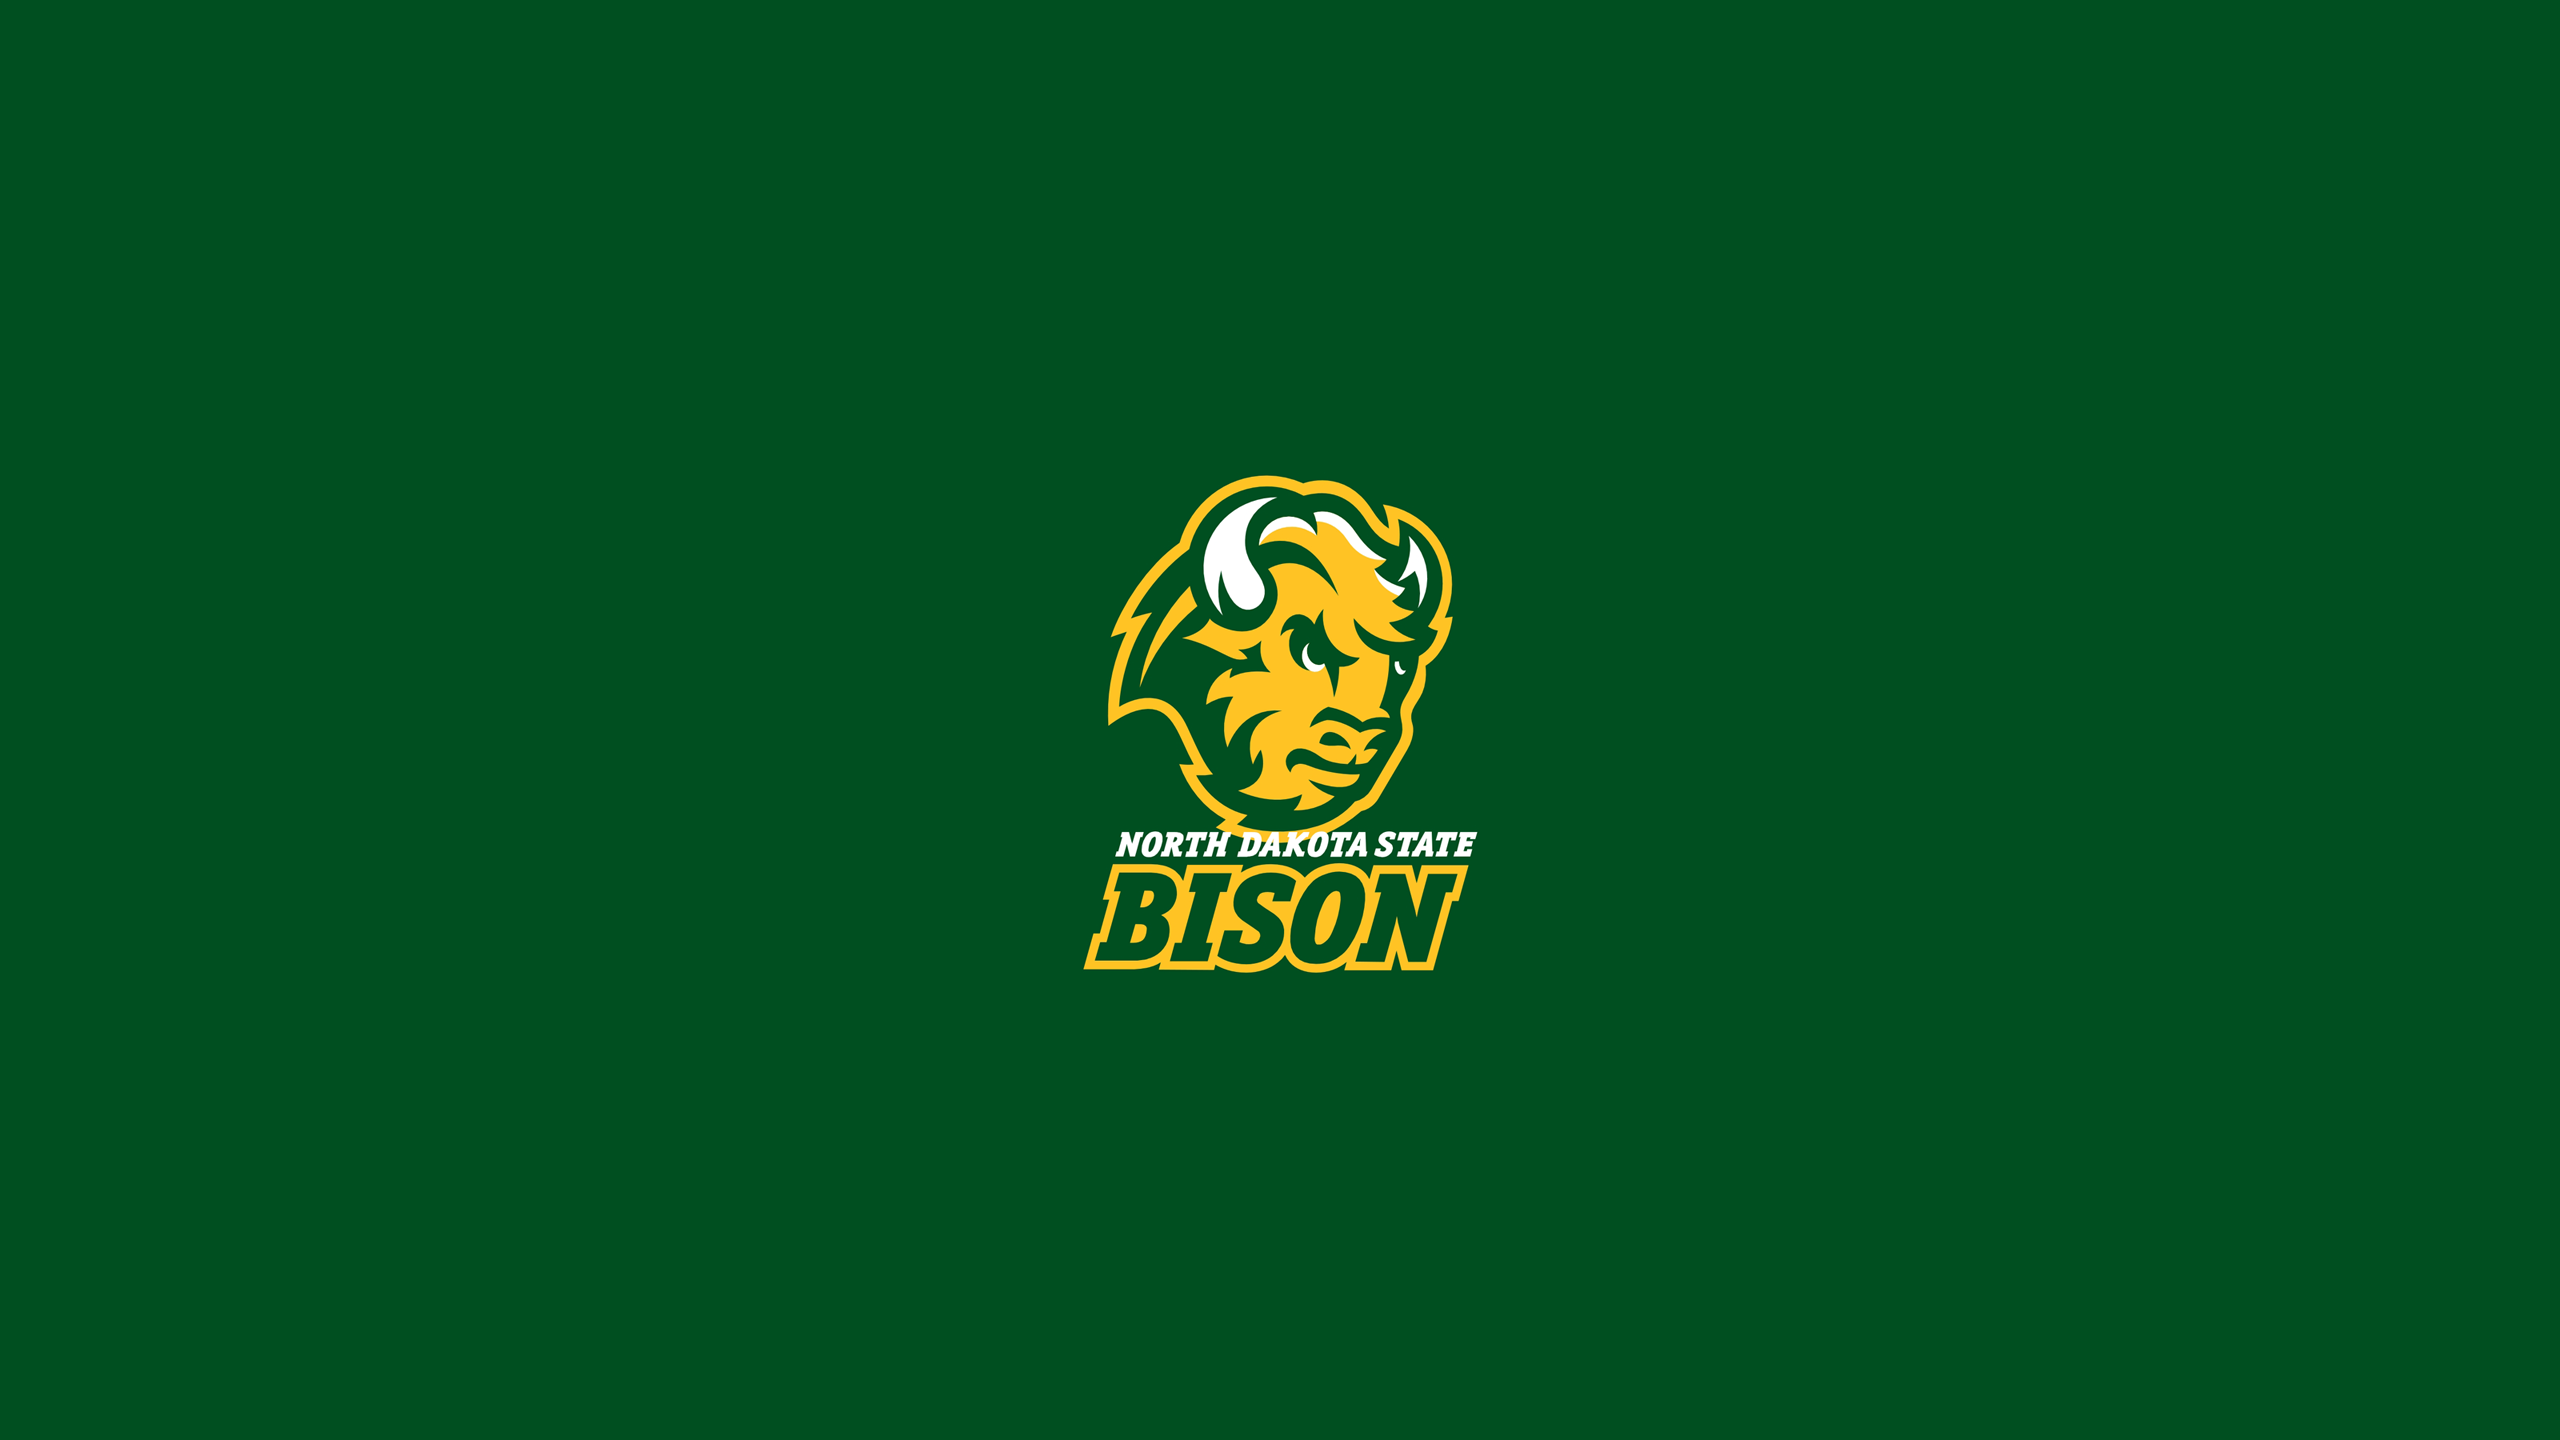 North Dakota St. University Bison